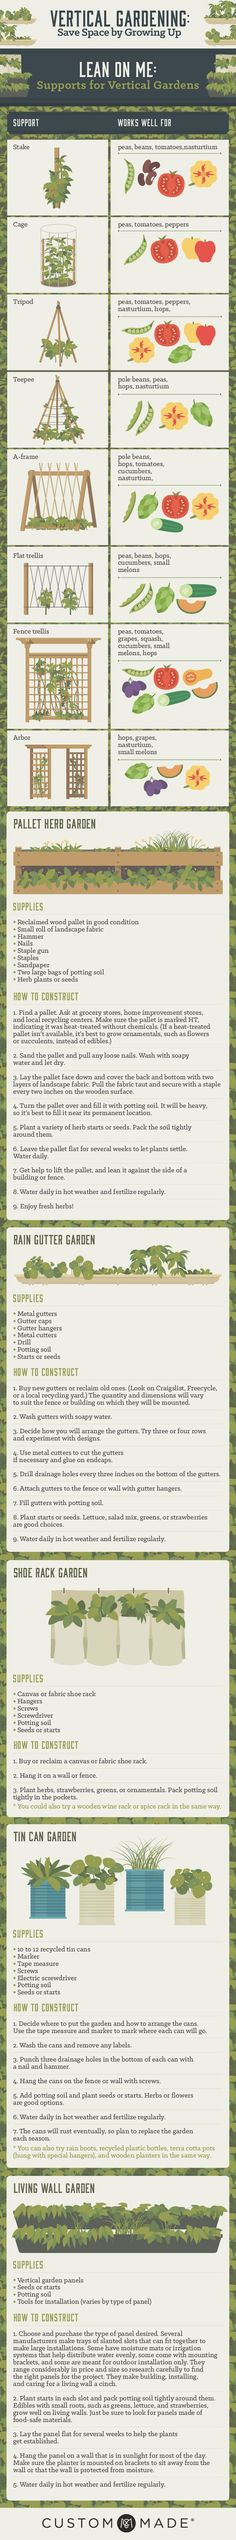 How To Urban Garden Learn how to grow a vertical garden. - Learn how to grow a vertical garden and master vertical gardening with this useful infographic. Vertical Vegetable Gardens, Veg Garden, Edible Garden, Vegetable Gardening, Organic Gardening, Gutter Garden, Veggie Gardens, Urban Gardening, Diy Vertical Garden